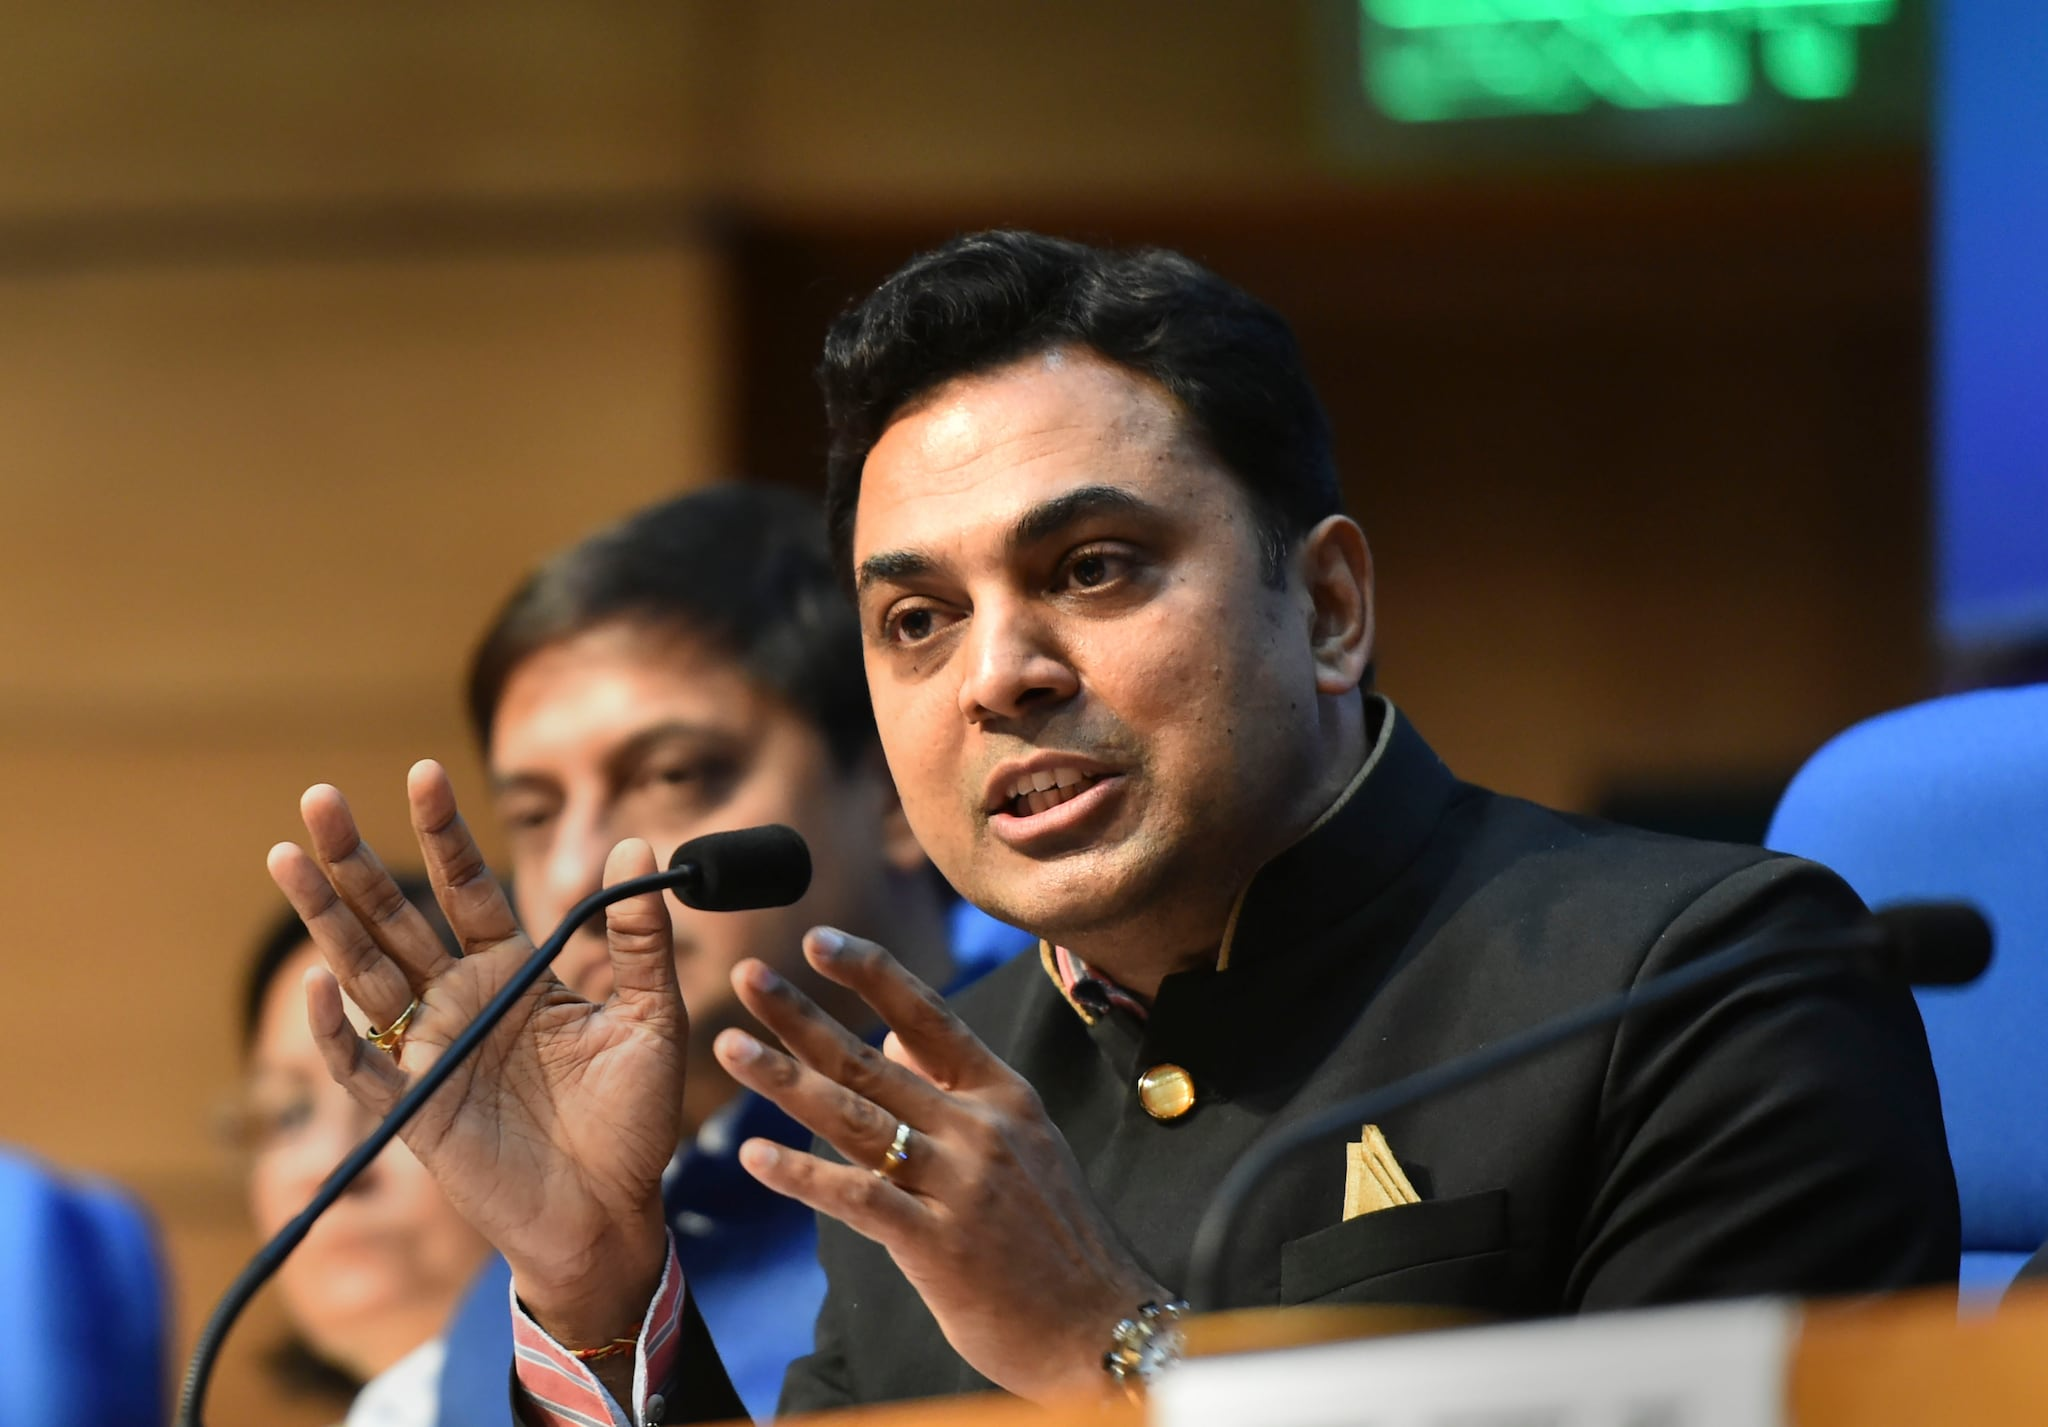 8. Chief Economic Adviser On Investment: Chief Economic Adviser K V Subramanian on Thursday said India needs to accelerate investment in excess of 35 percent of the GDP to achieve 8 percent sustained growth which is essential for becoming a USD 5 trillion economy by 2024-25.